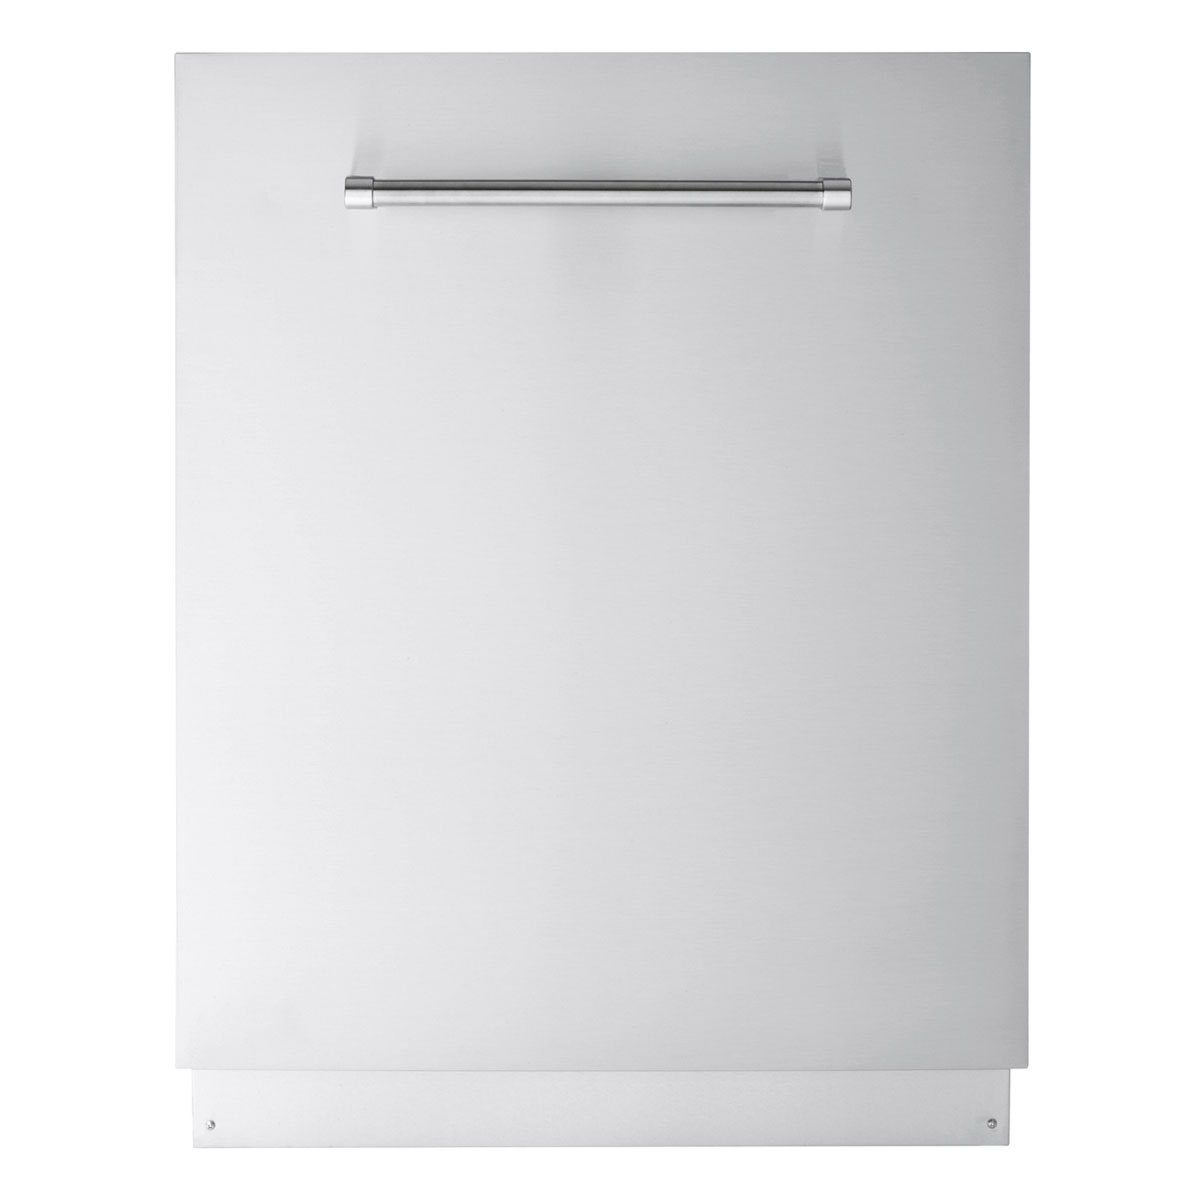 Delonghi DEDW654FI Fully-Integrated Dishwasher